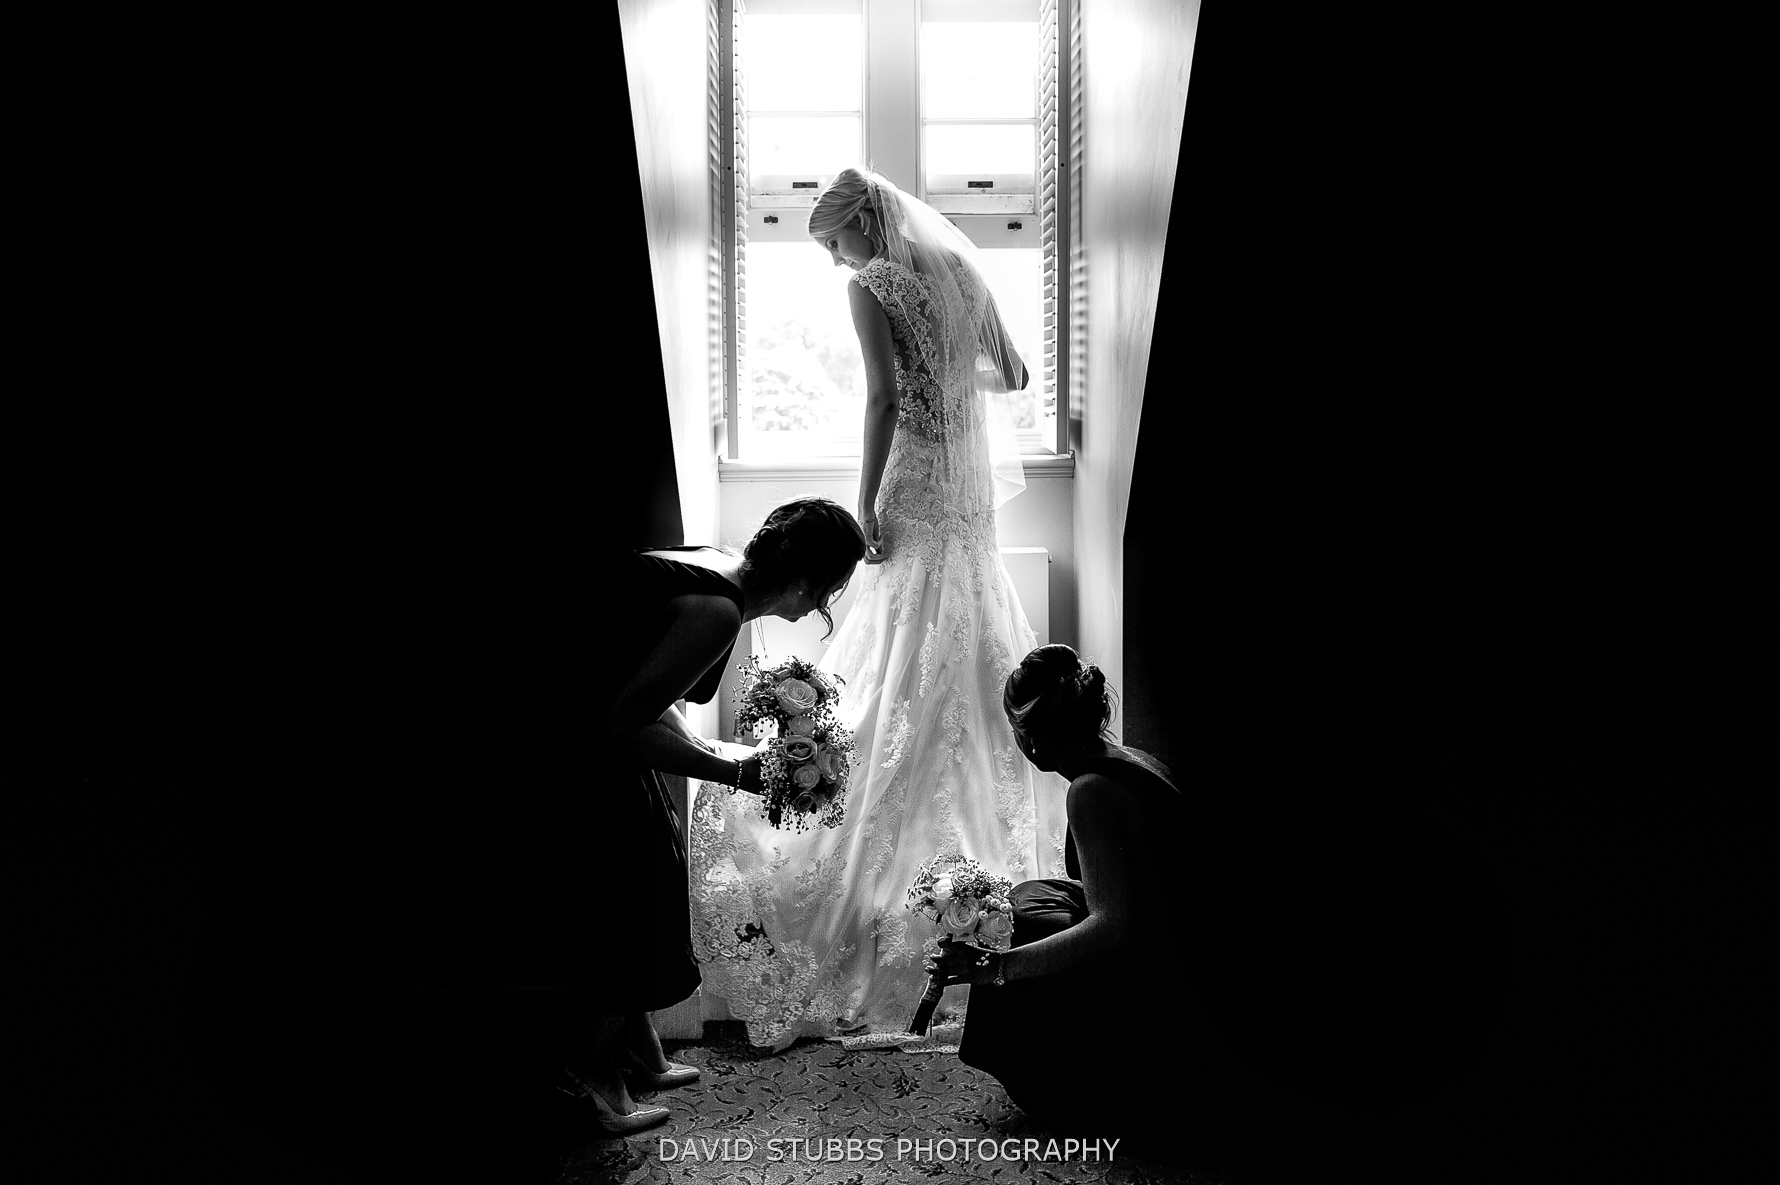 fixing the dress in natural window light